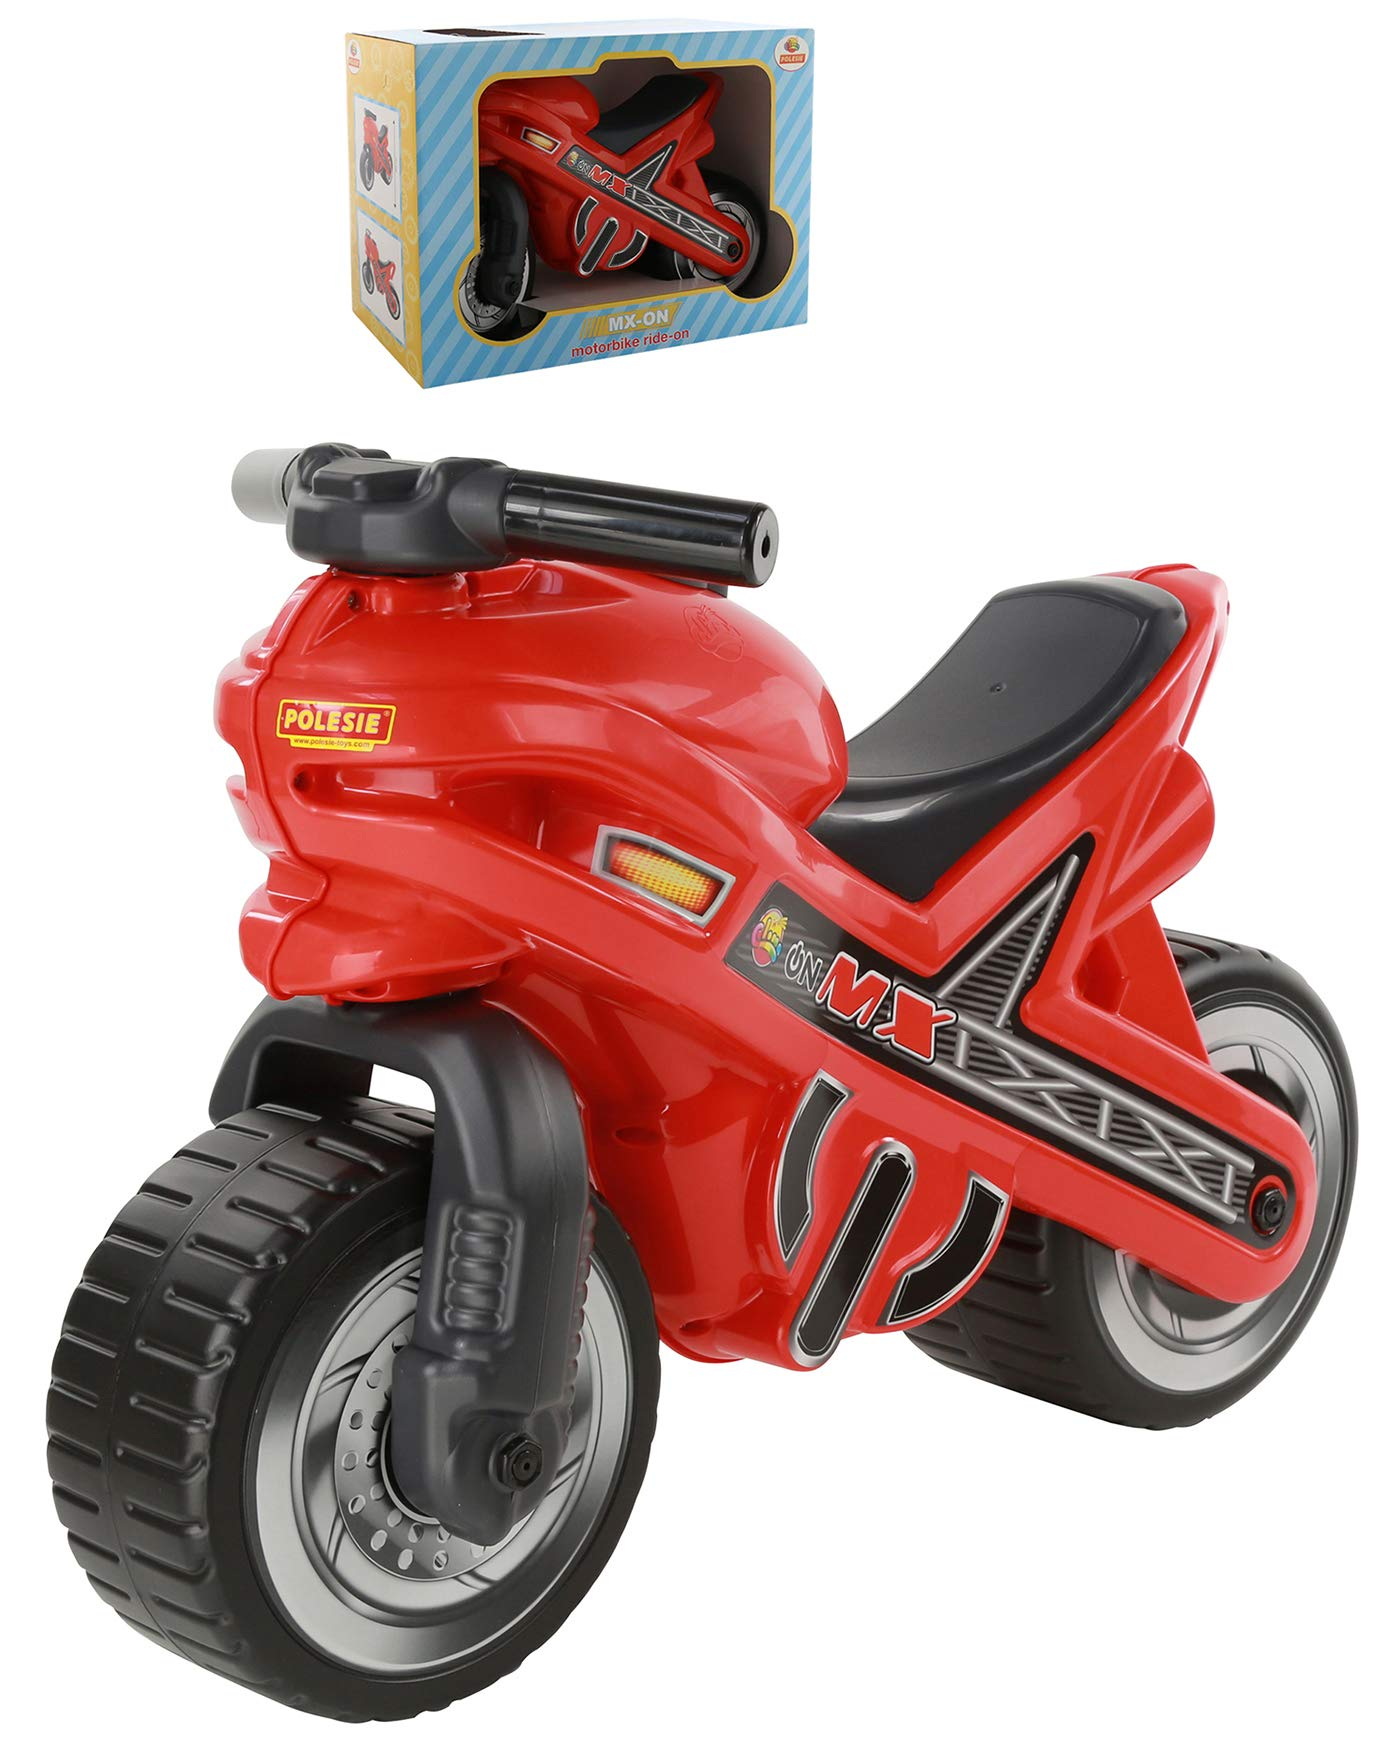 Polesie 67180 Mx Motorbike (Box) - Tricycles and Ride-Ons, Multi Colour